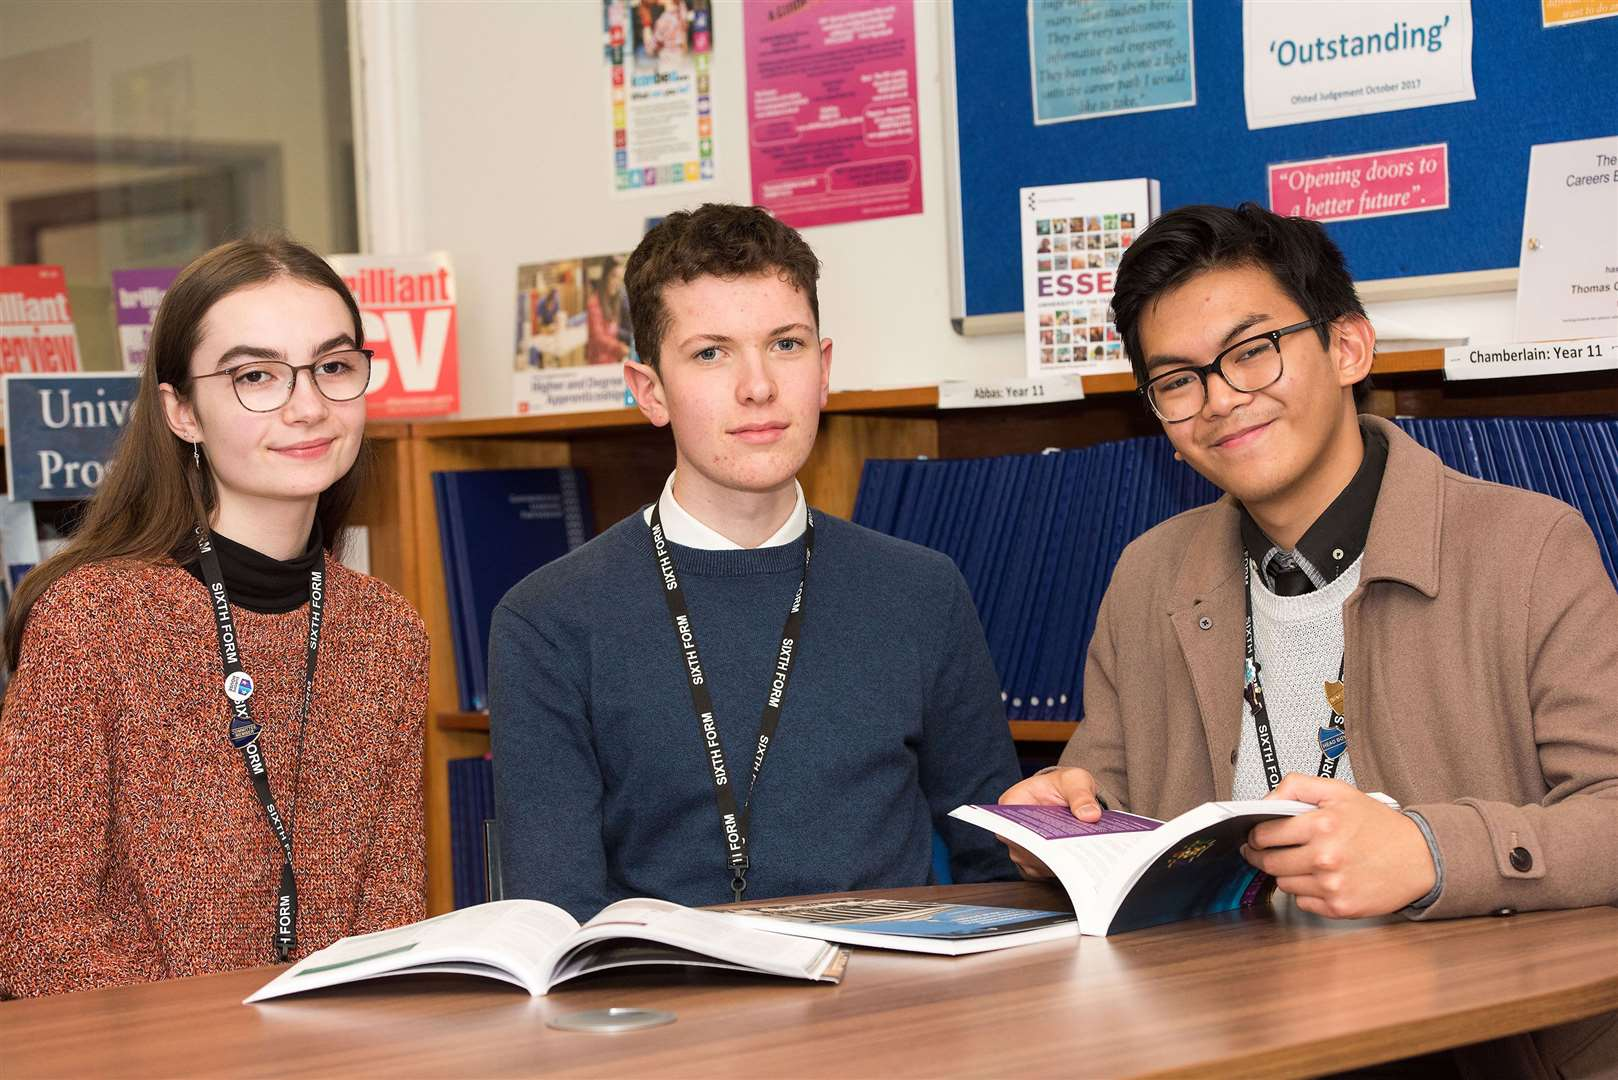 SUDBURY.Thomas Gainsborough School, Wells Hall Rd, Great Cornard, Sudbury.Sixth formers quizzed parliamentary candidates during a school debate on Monday..A group of pupils shared their thoughts on the up coming general election and important issues they would like to see addressed. Gemma Deacon, Charlie Heeks and Jacob Micvlob Picture by Mark Westley. (23270064)